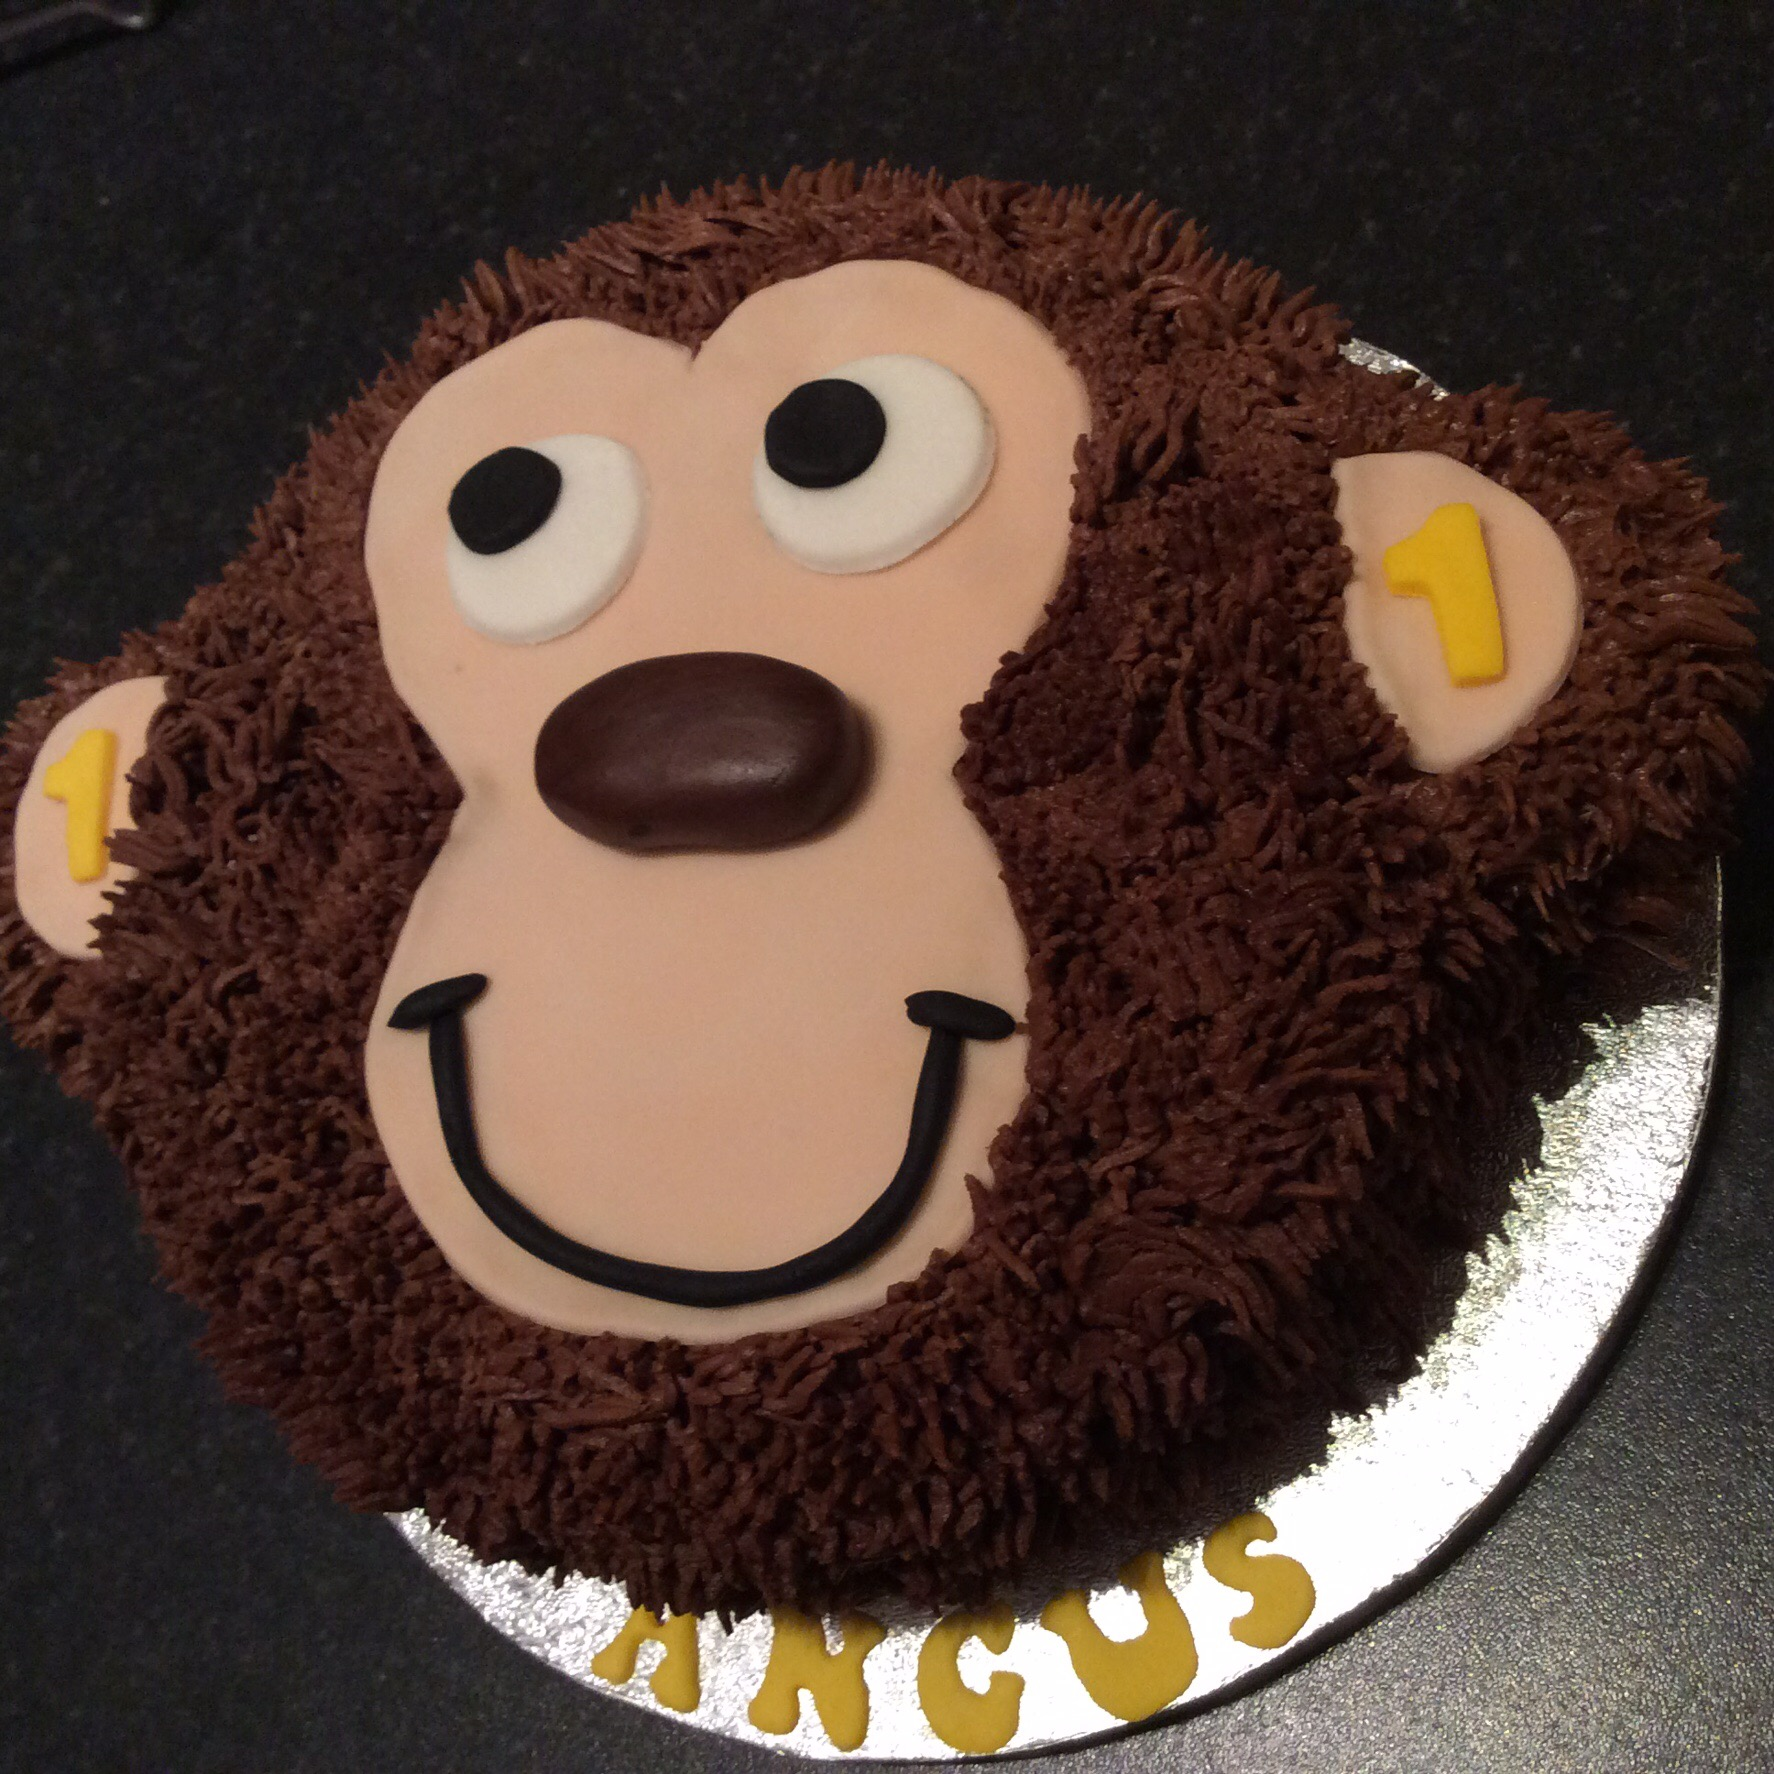 I Love Monkey And The Monkettes Cakes By Lizzie Edinburgh